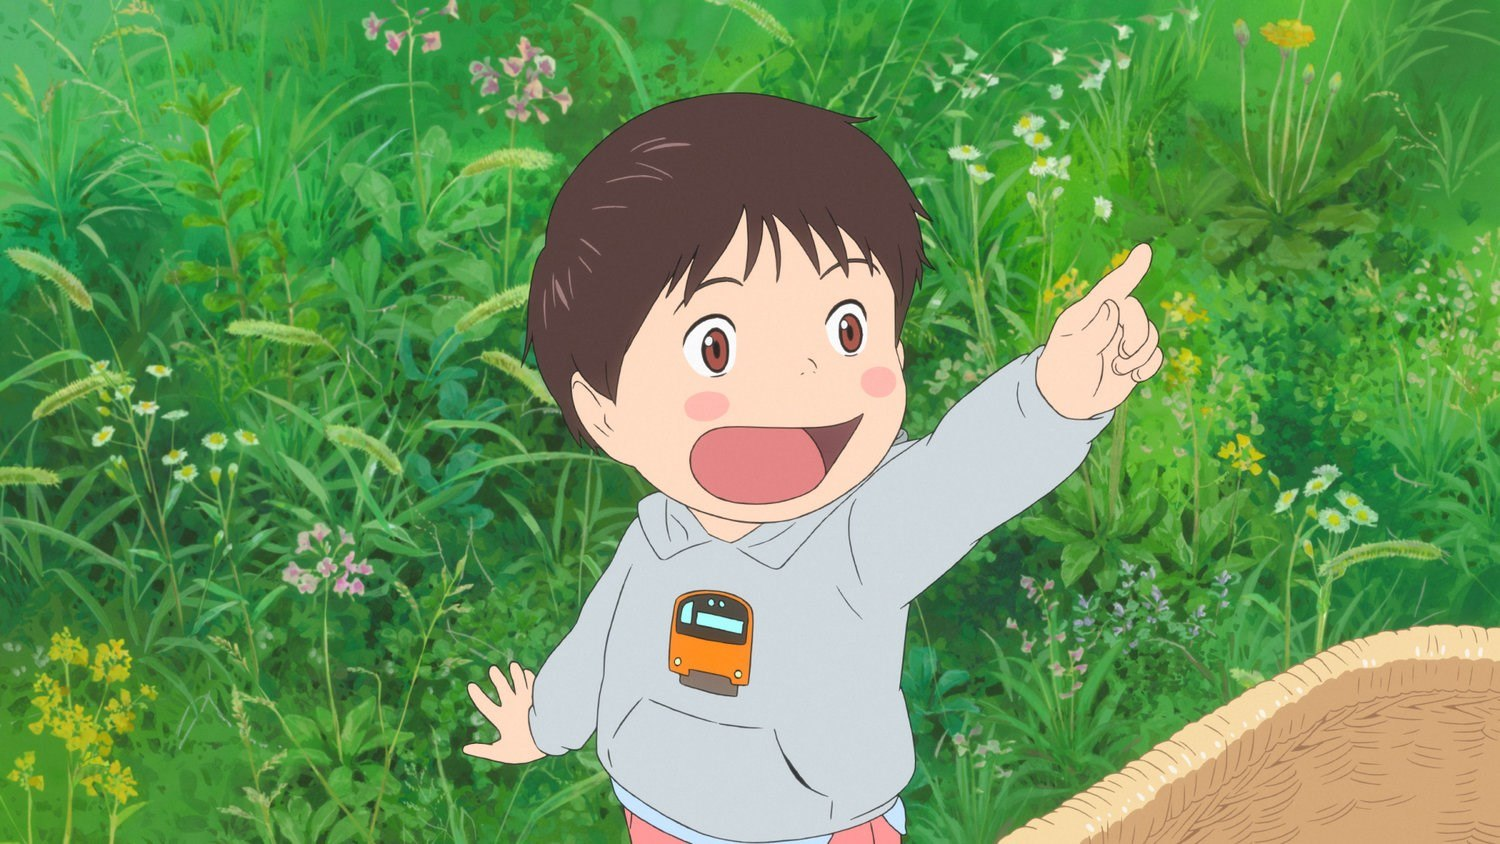 New Trailer Arrives for Mamoru Hosoda's 'Mirai' | Animation World